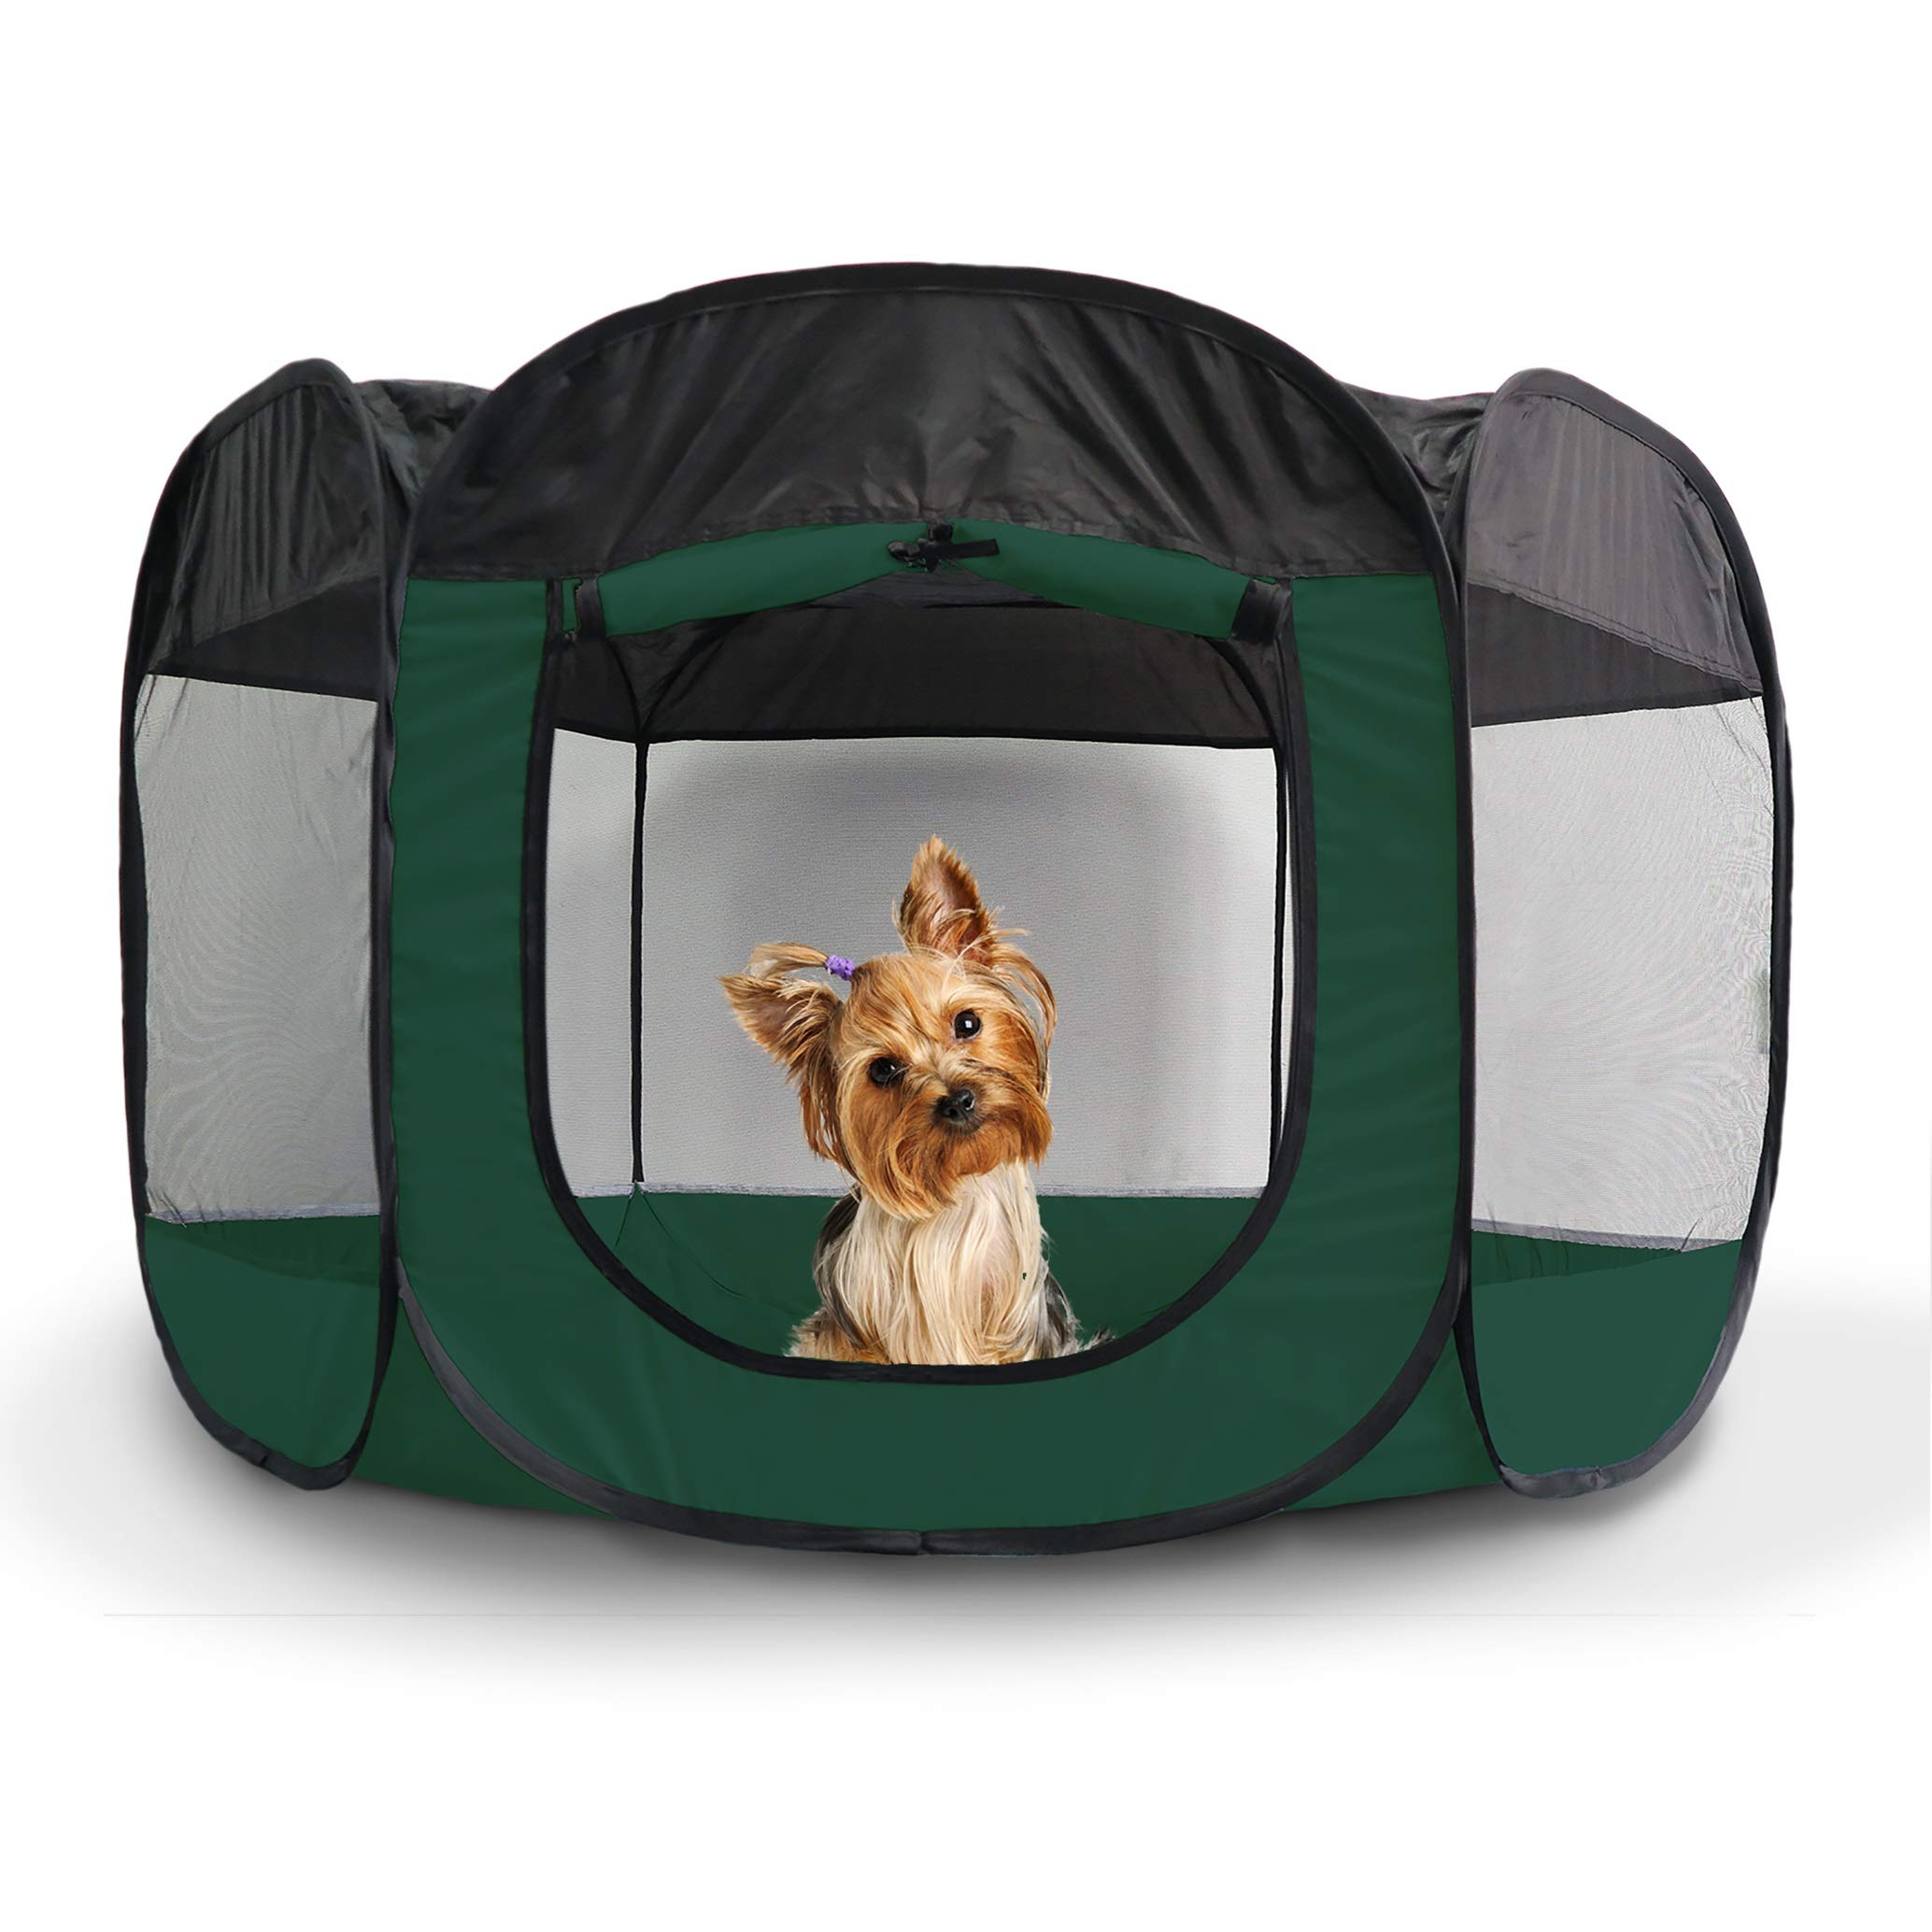 Furhaven Pet Playpen - Indoor/Outdoor Mesh Open-Air Playpen & Exercise Pen Tent House Playground for Dogs & Cats, Hunter Green, Small